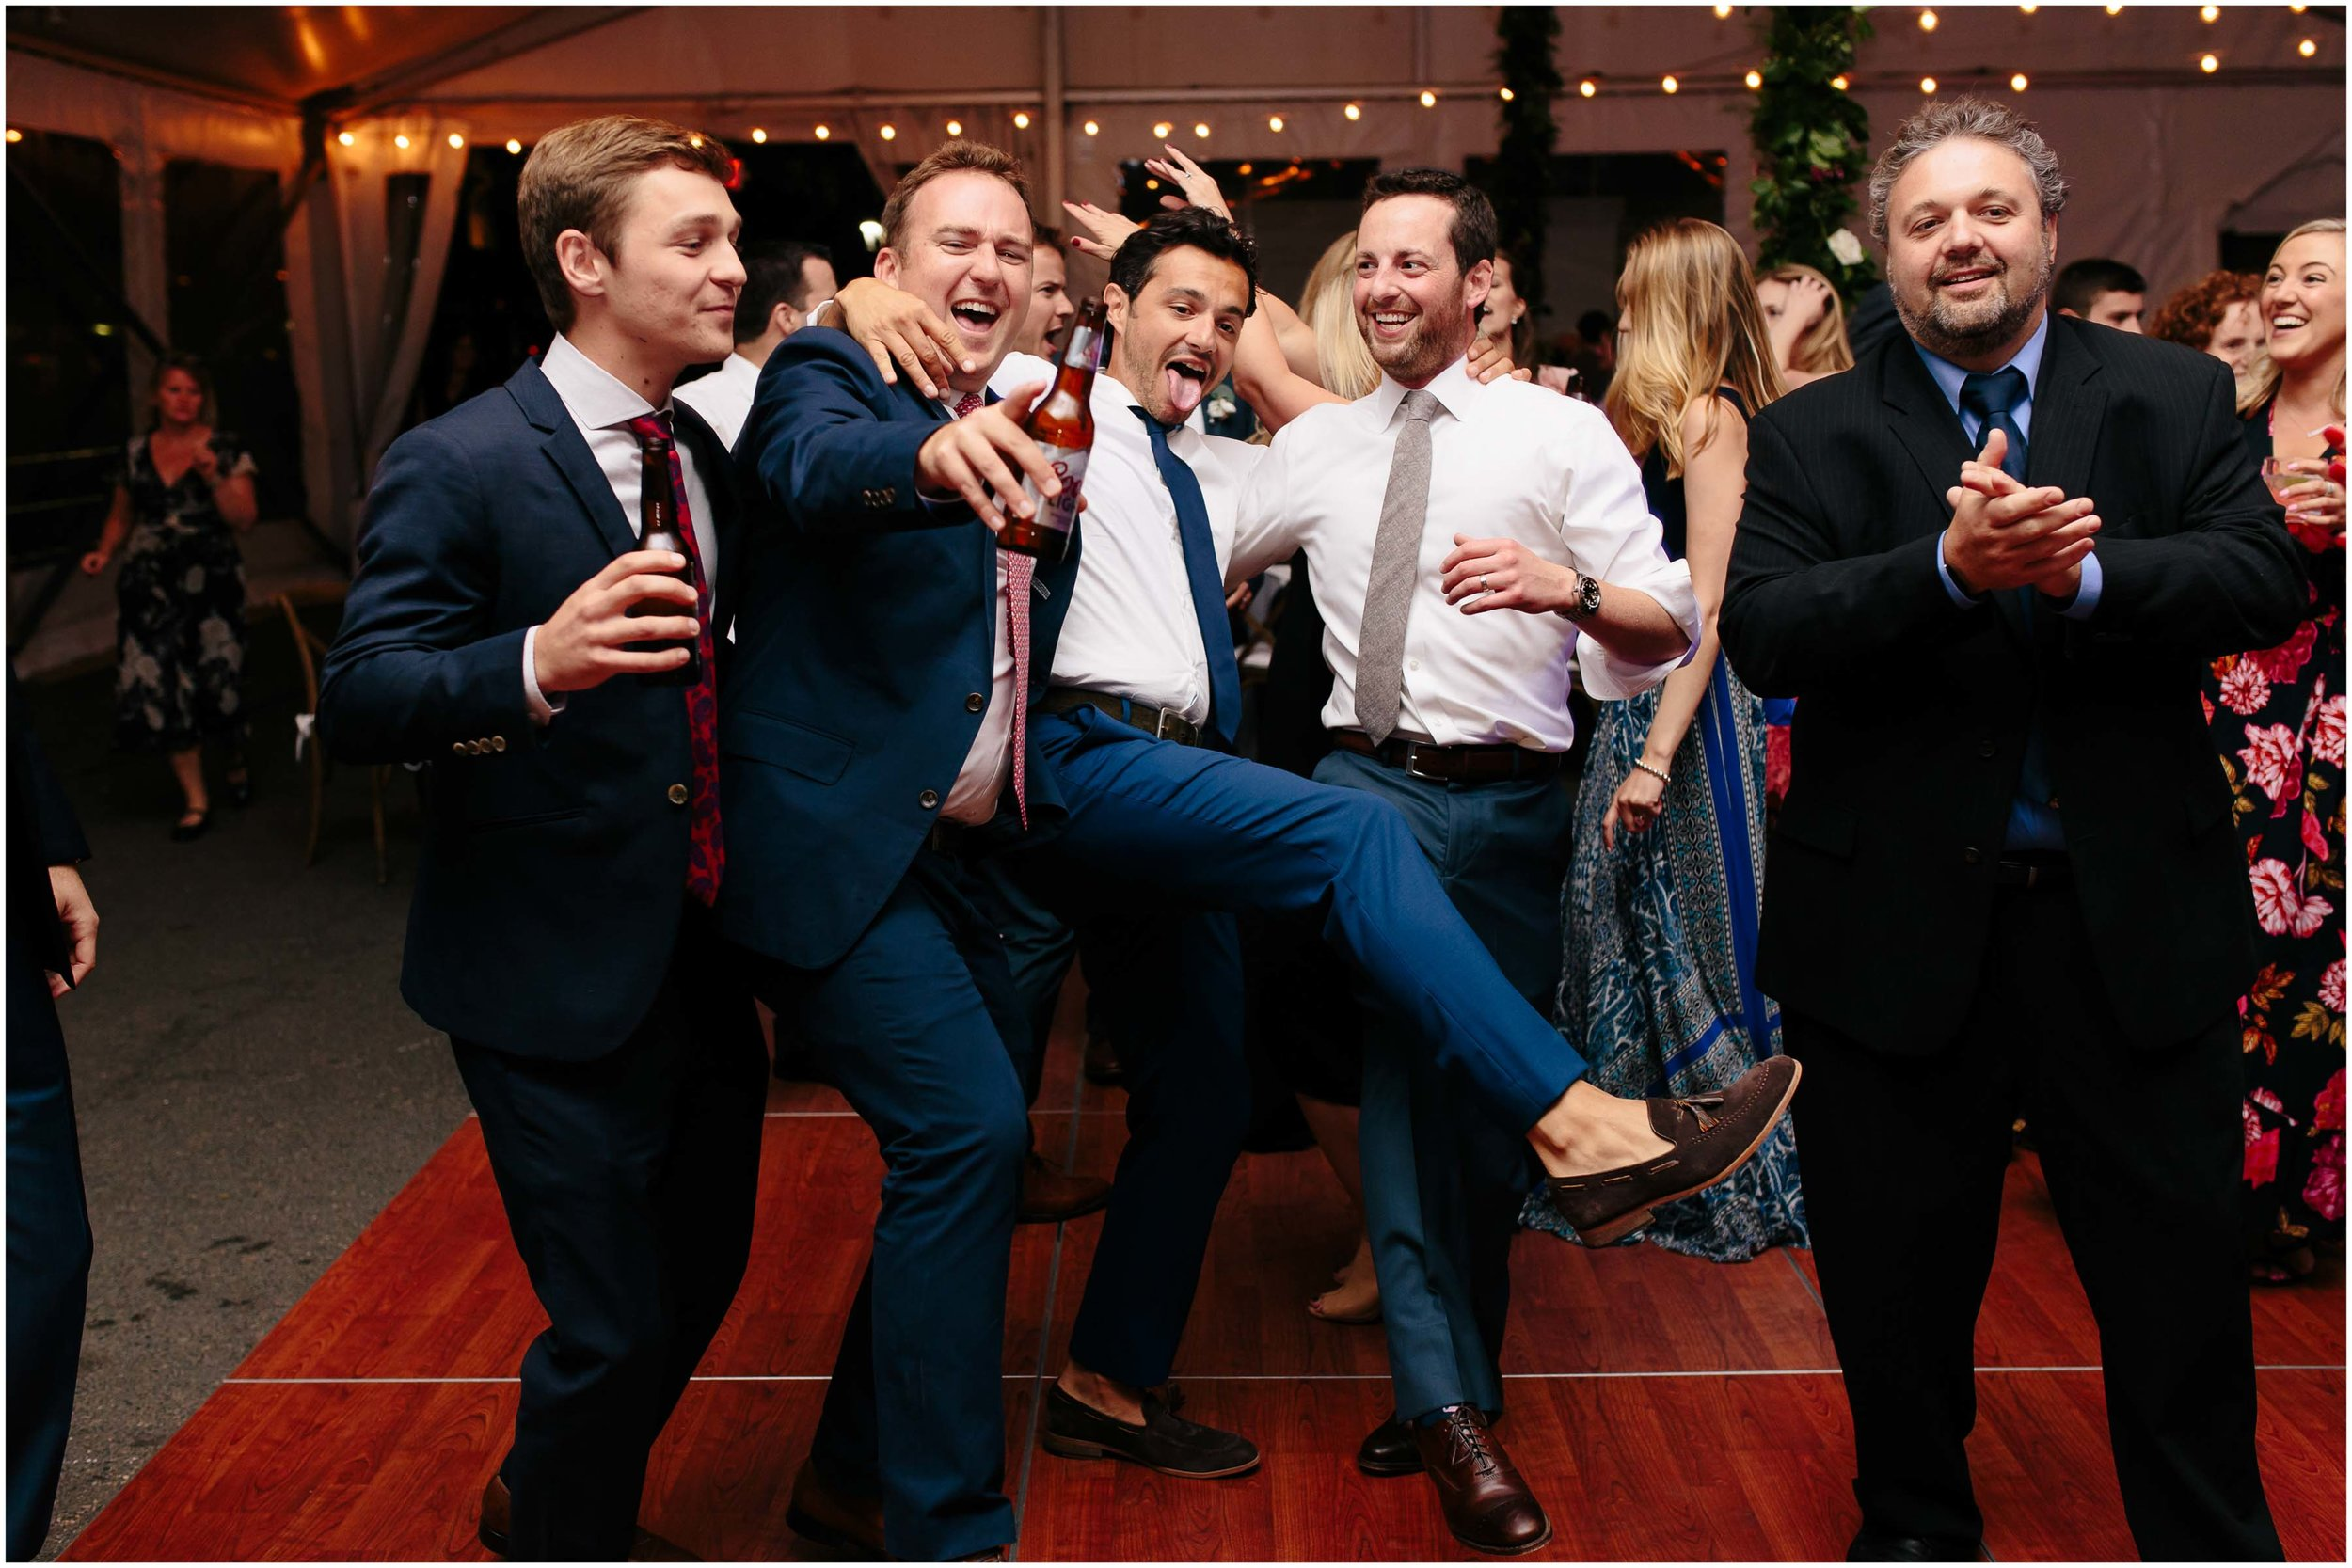 Nautical Massachusetts Jewish Wedding in the Boston Navy Yard reception groom partying